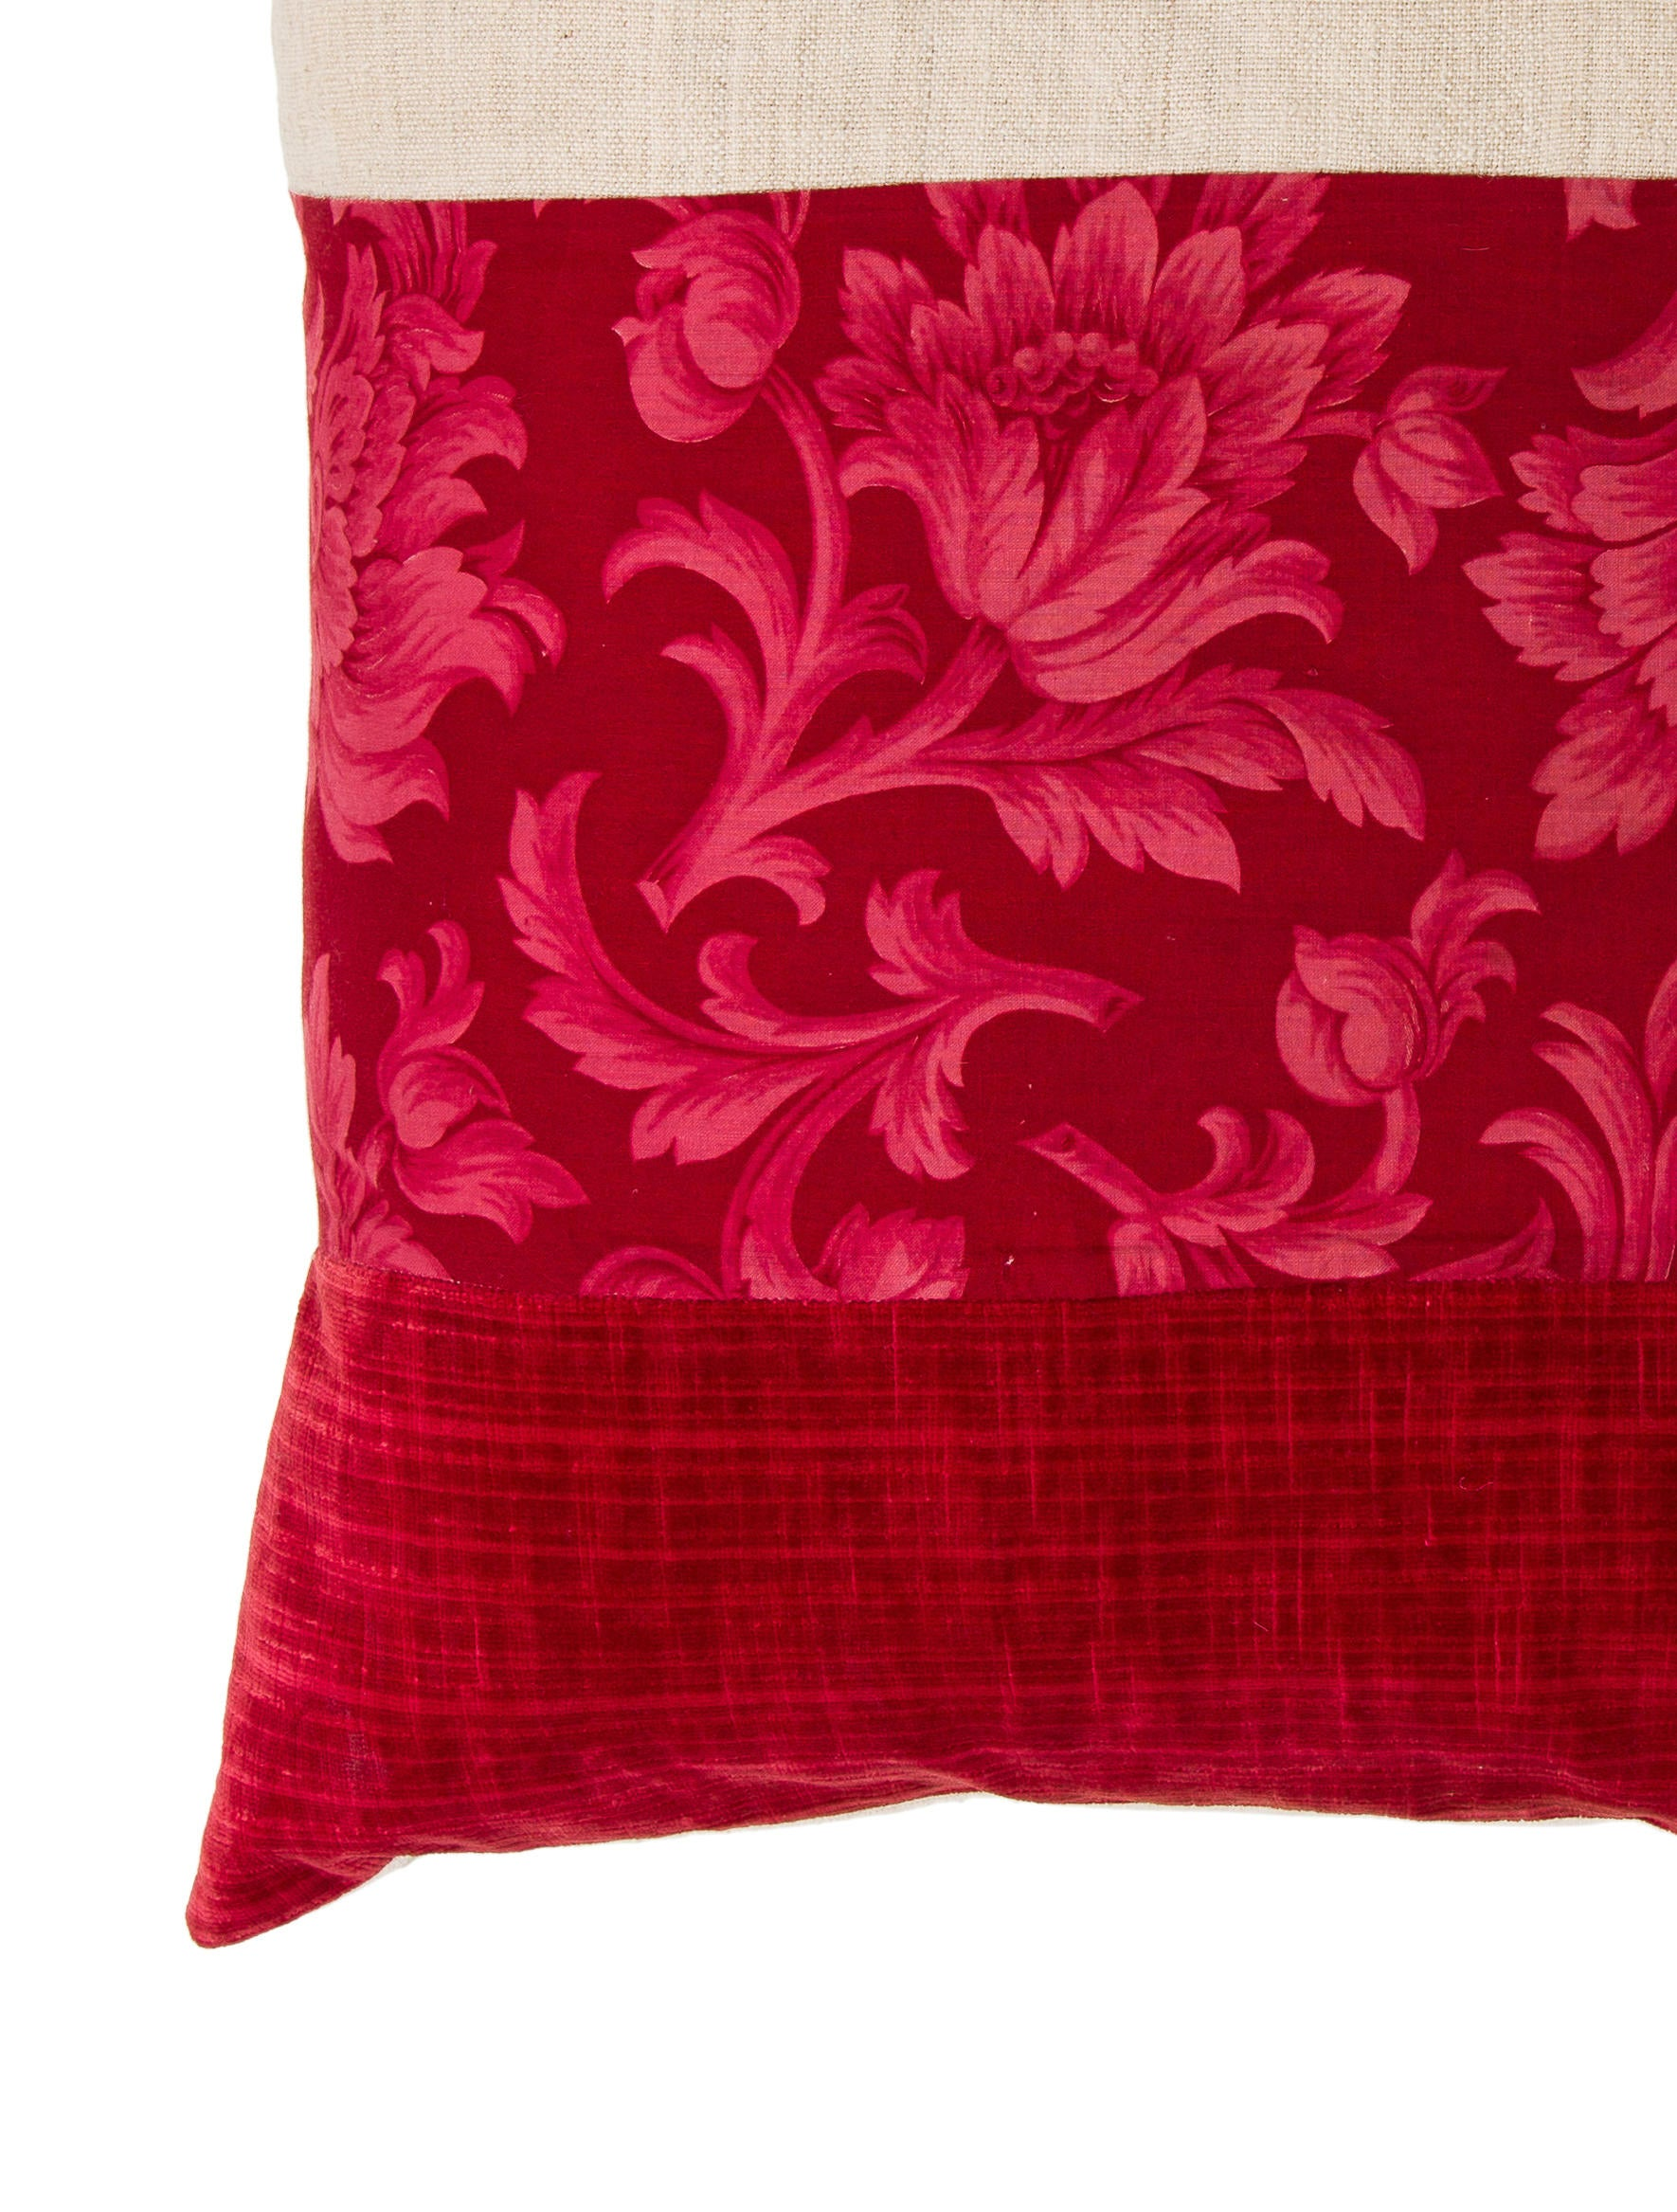 Throw Pillows Velvet : Velvet-Paneled Throw Pillow - Bedding And Bath - HME21207 The RealReal